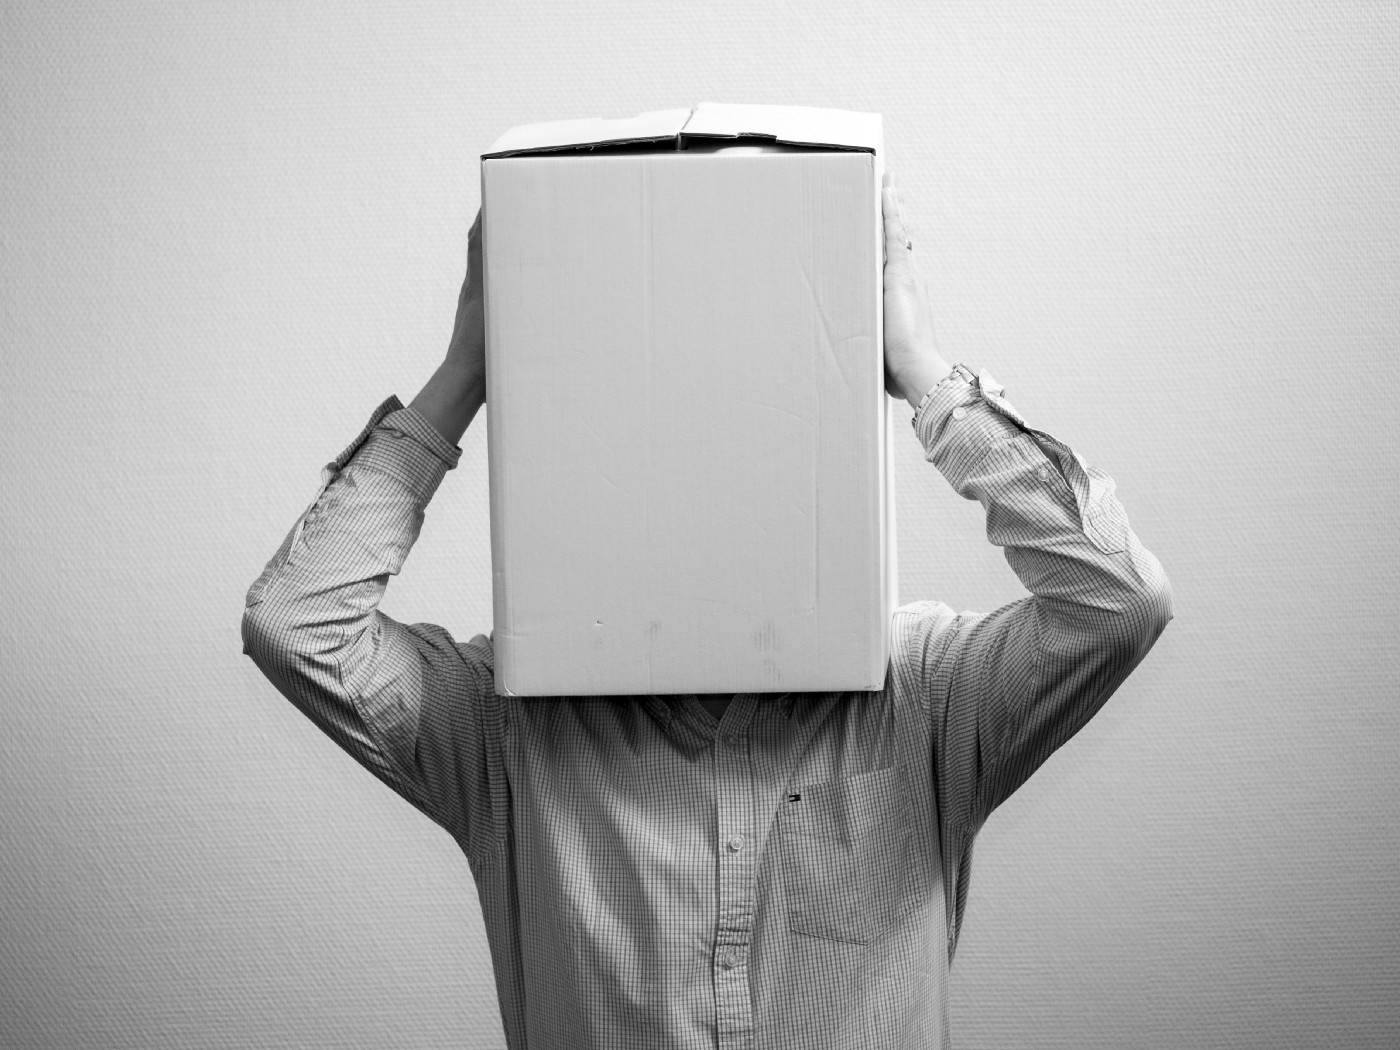 Man with a box sitting over his head so you cannot see his face